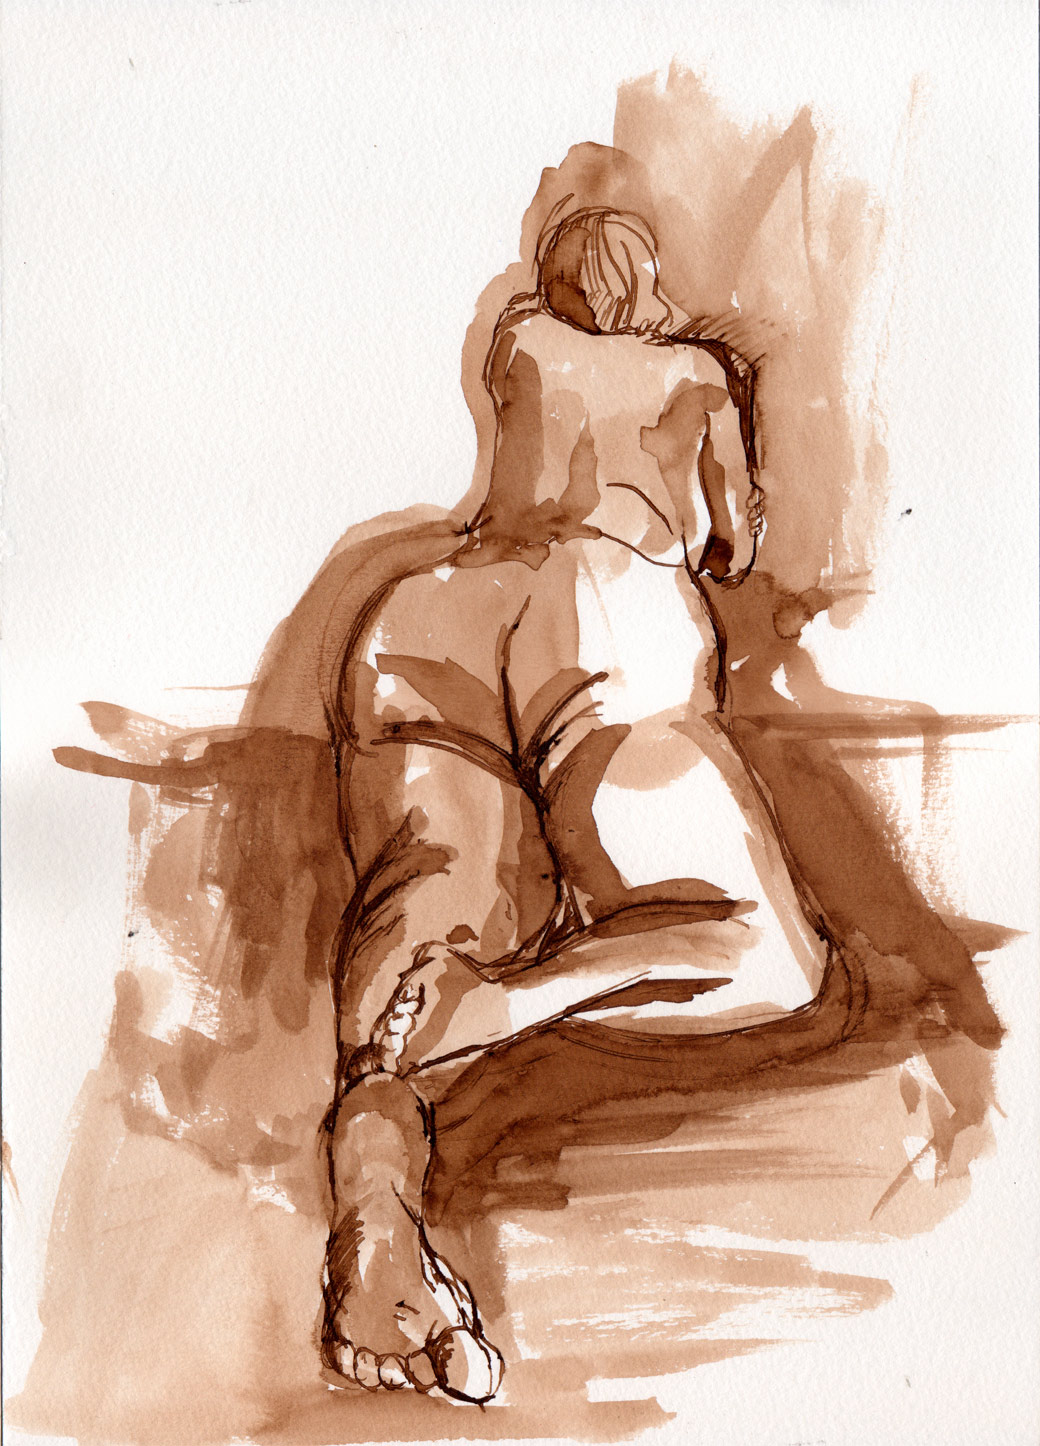 Life Drawing Page Three (2010)